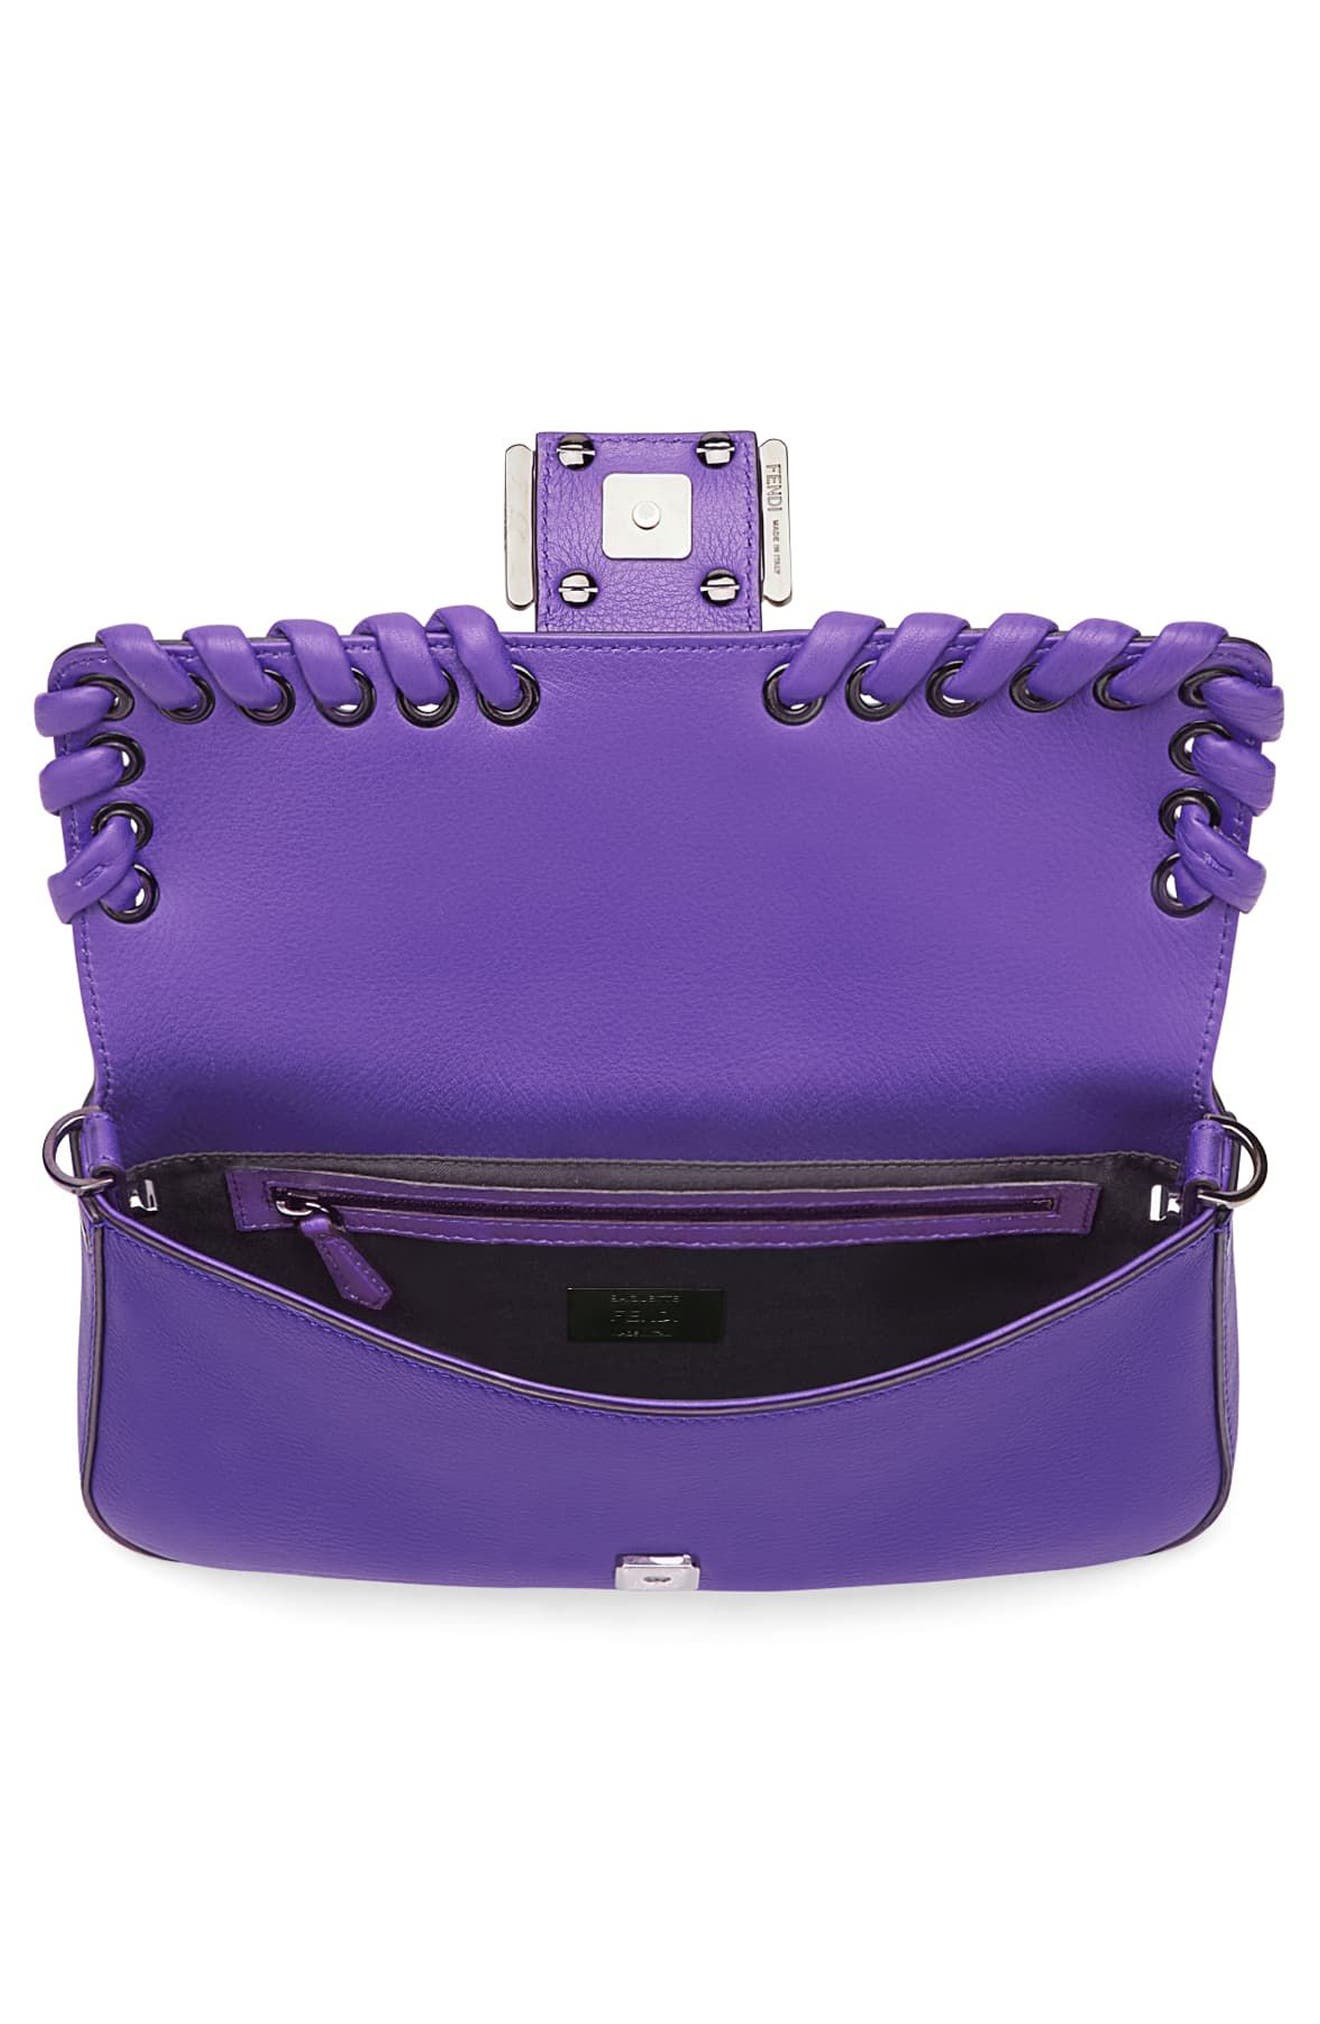 'Dolce' Calfskin Leather Baguette,                             Alternate thumbnail 4, color,                             Purple Rain/ Ruthenium